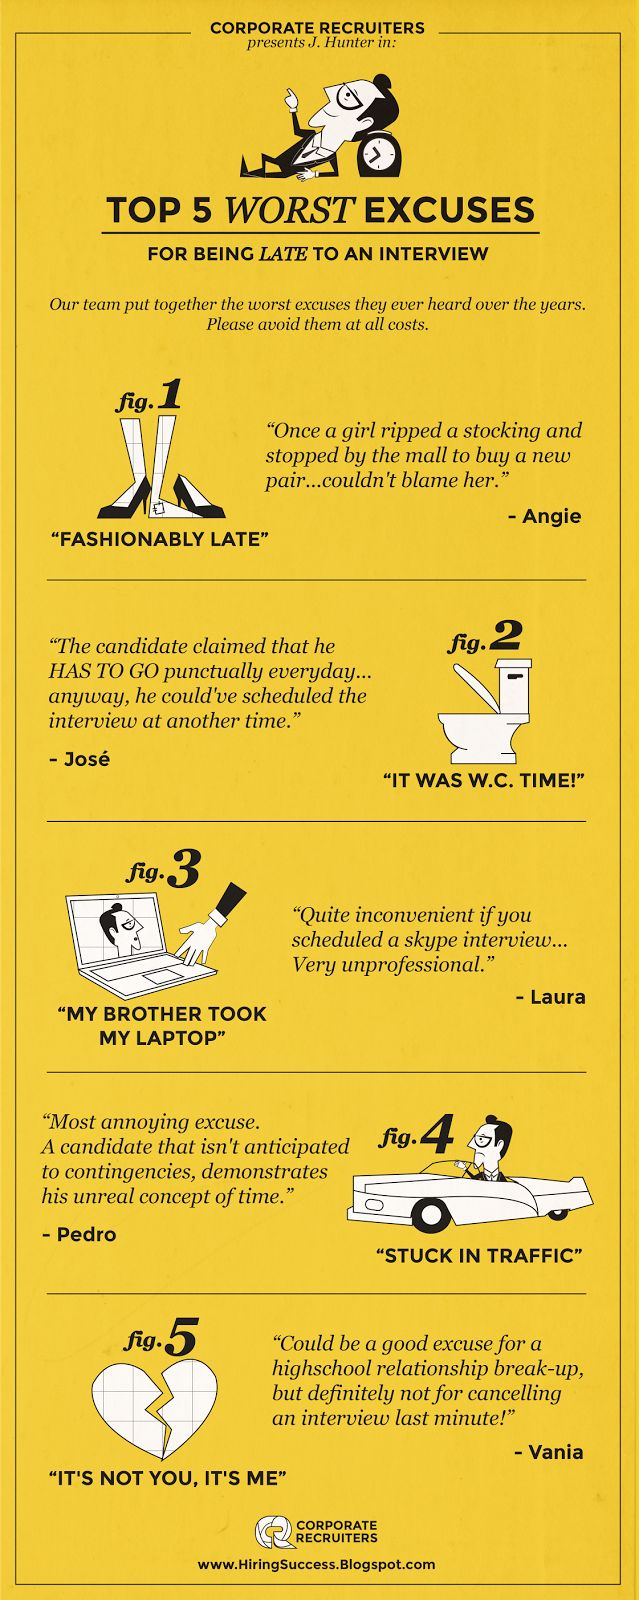 Top 5 WORST Excuses for Being Late to an Interview? [INFOGRAPHIC]